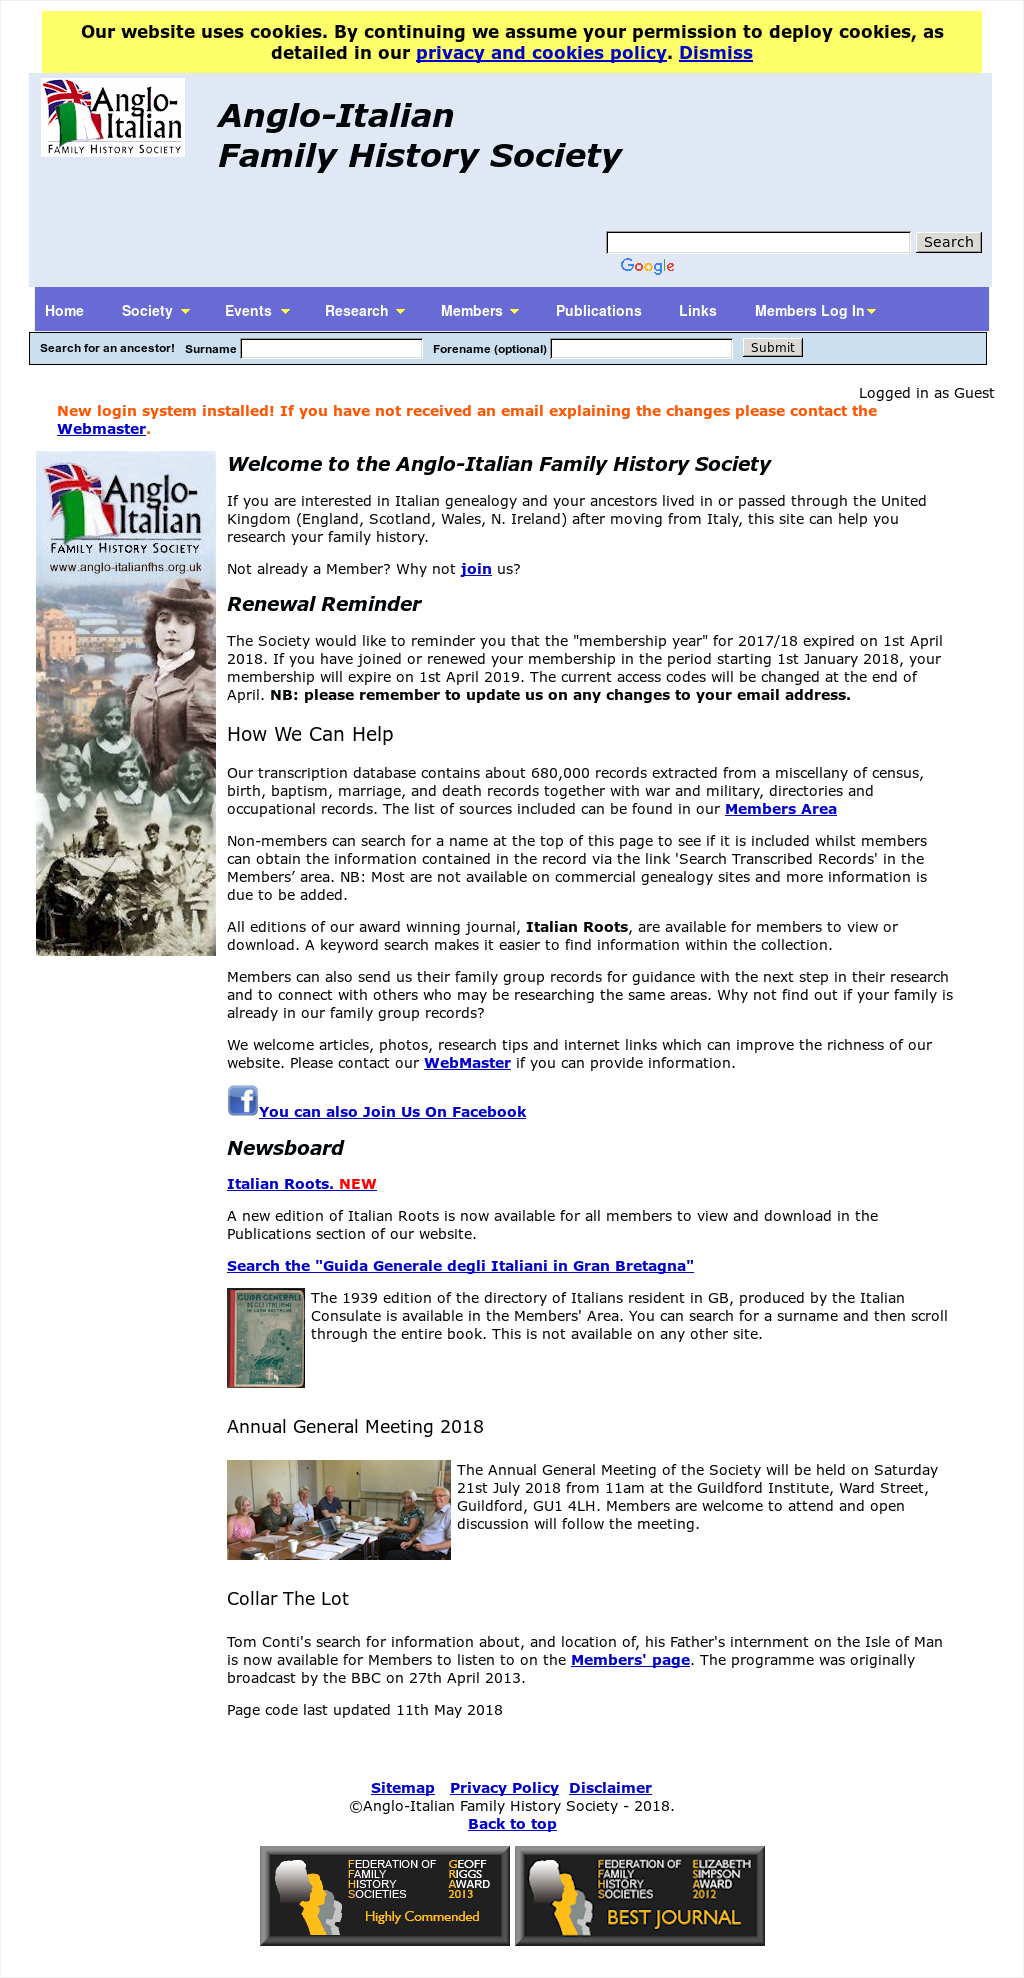 Anglo-italian Family History Society Competitors, Revenue and